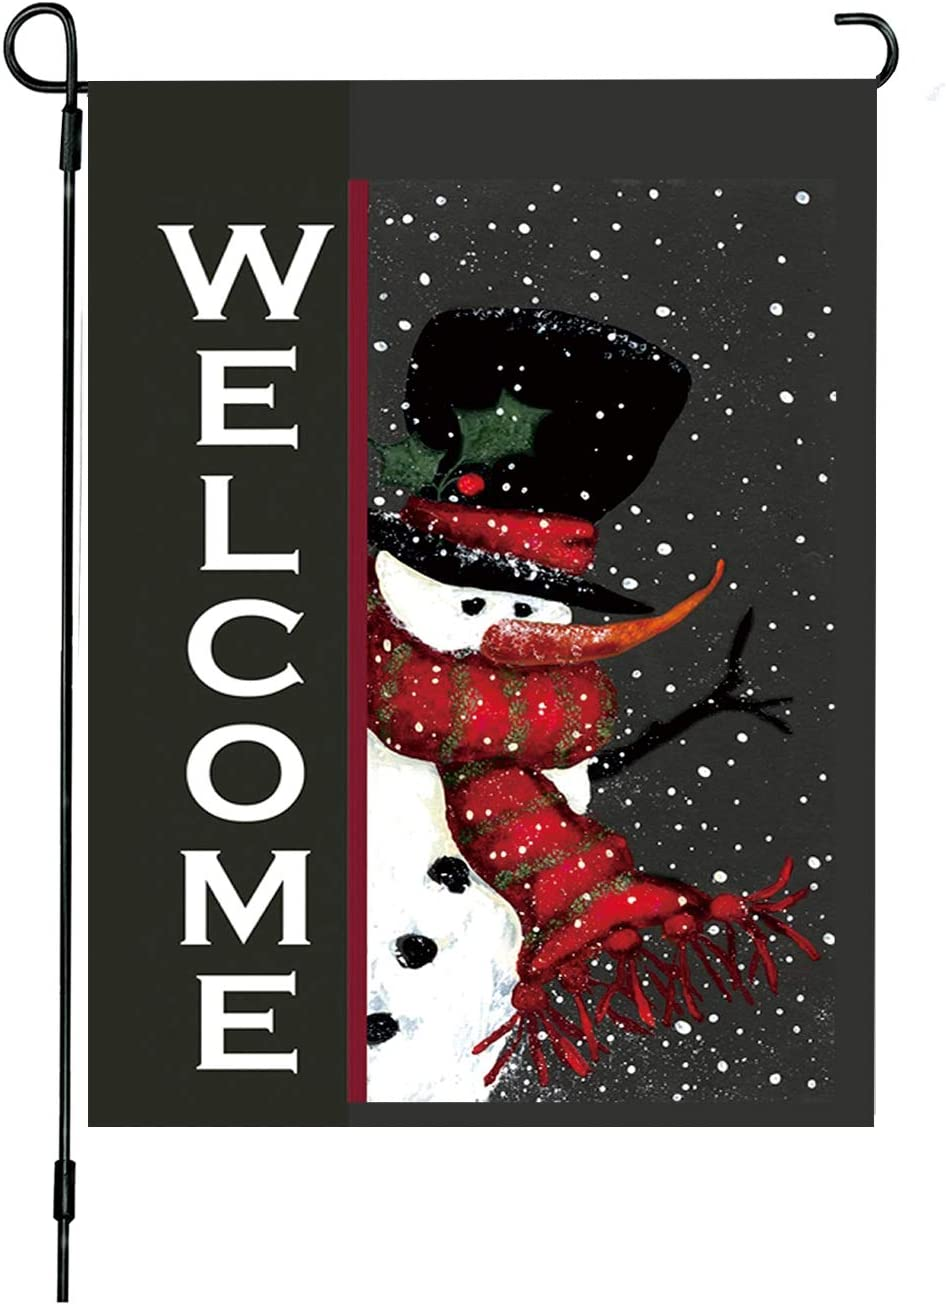 YINBANGKE Christmas Garden Flag,12X18 Inches Vertical Double Sided Outdoor Flag,Santa Claus,Holiday Indoor Outdoor,Party Home Christmas Decorations